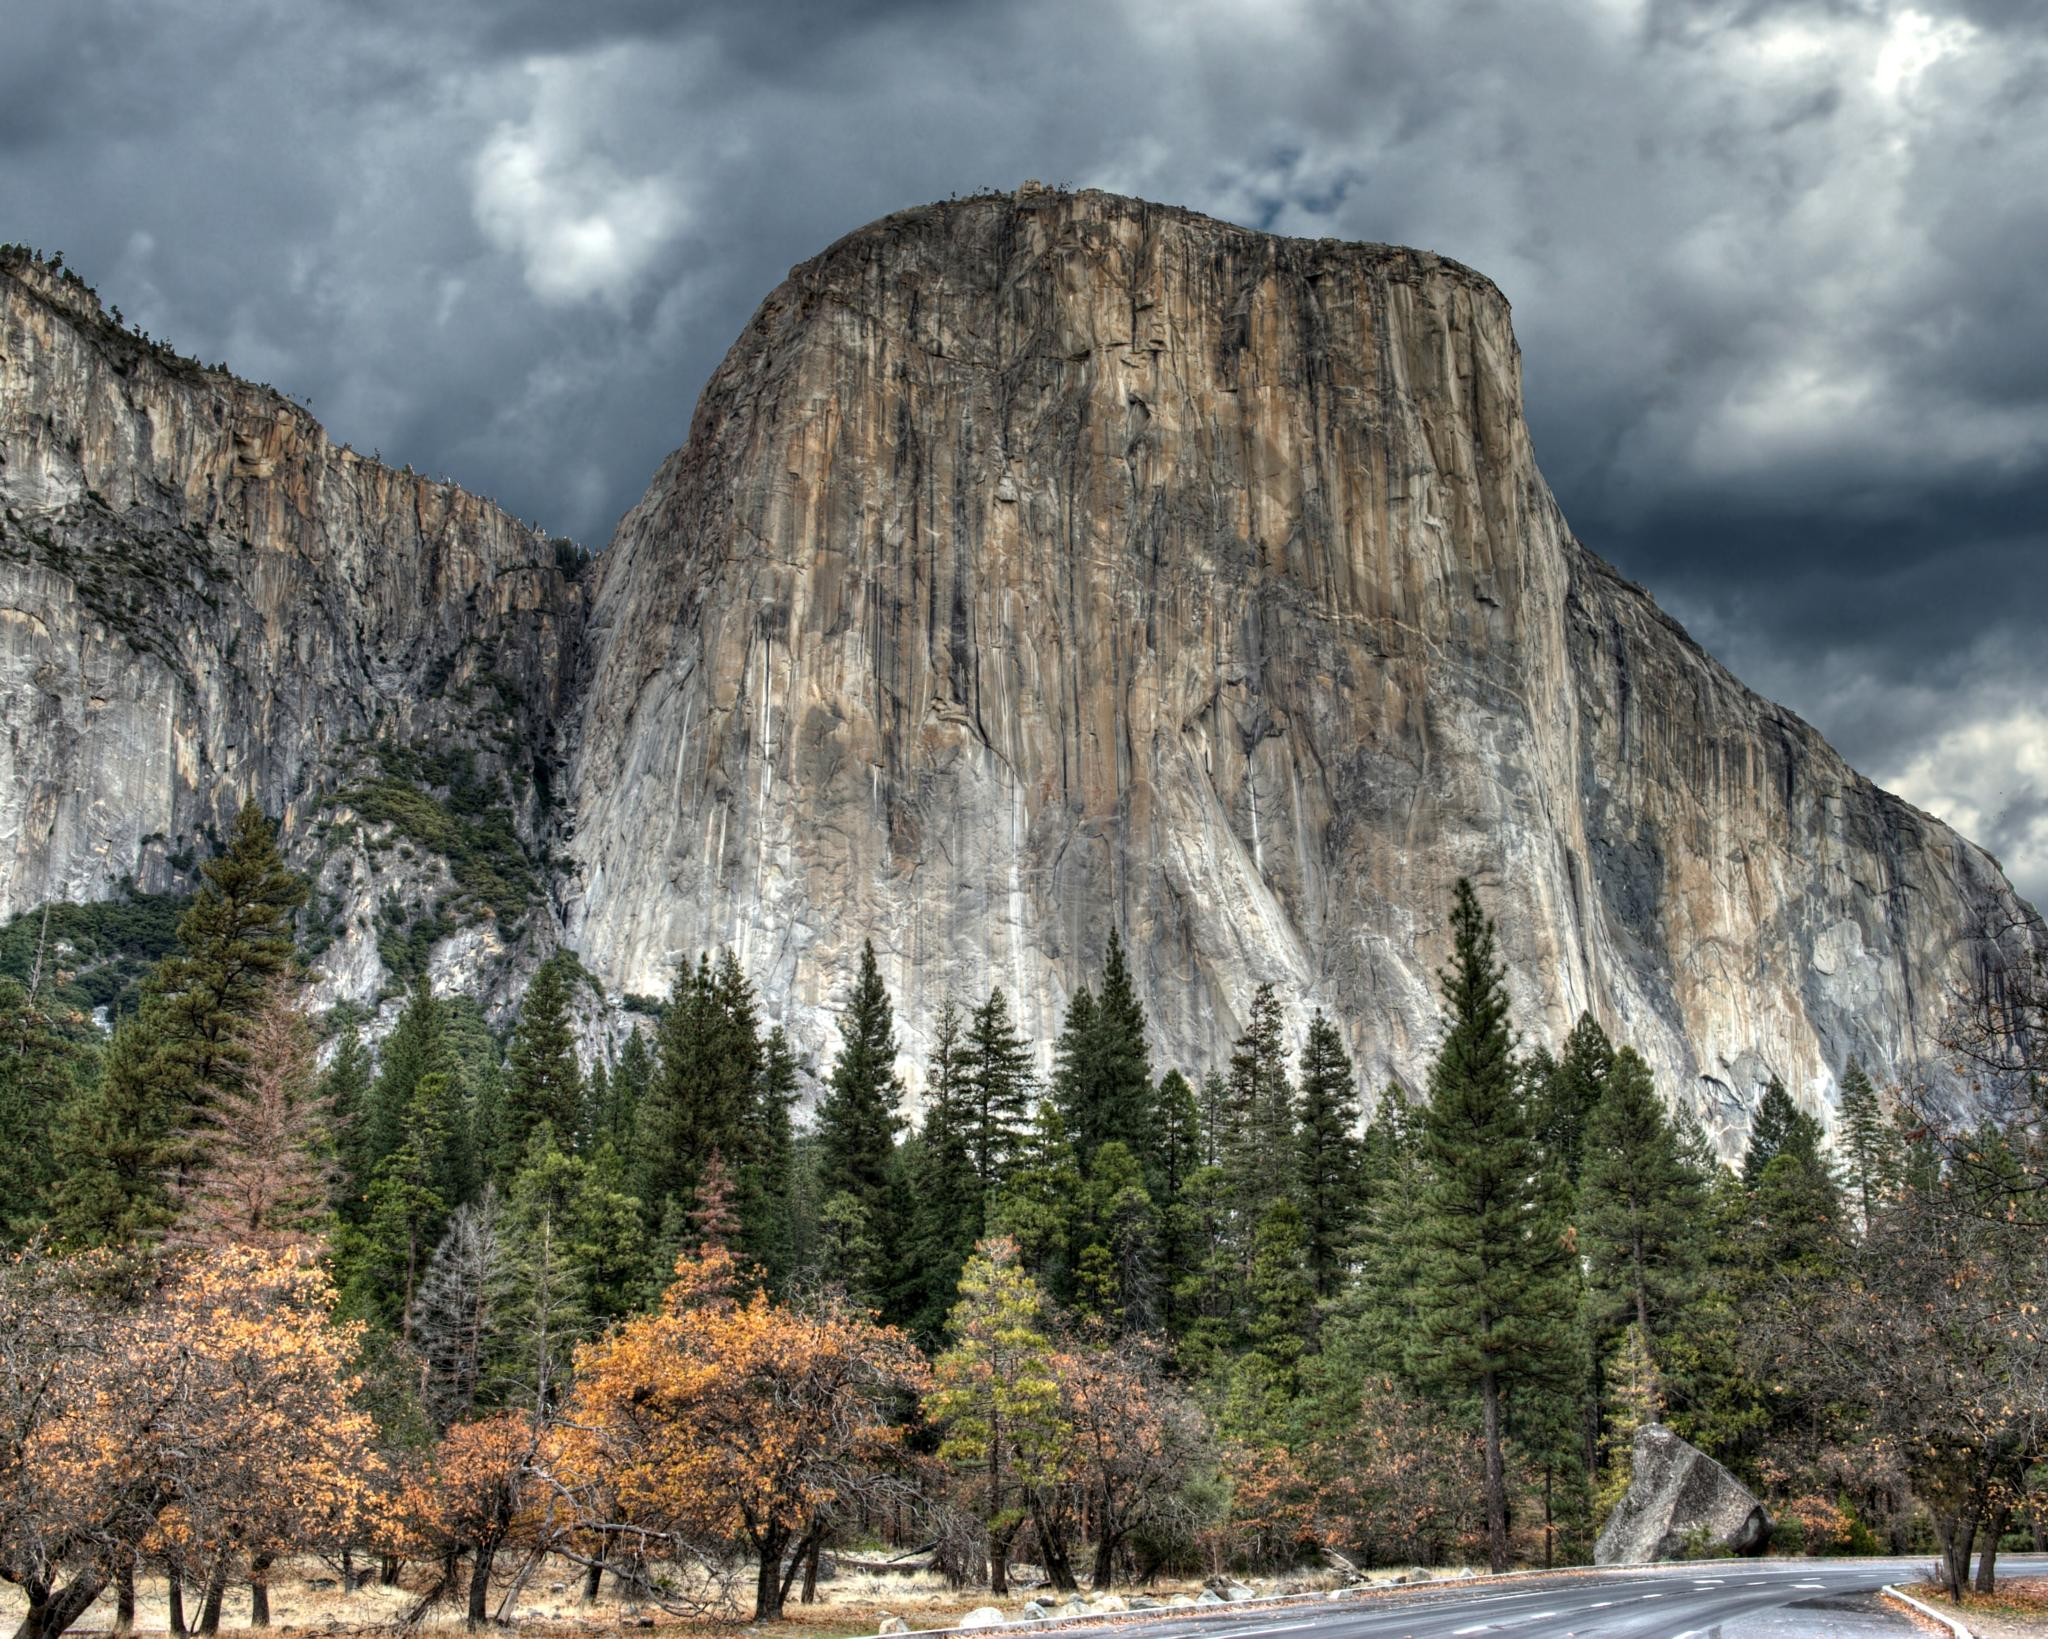 El Capitan by Doug Santo